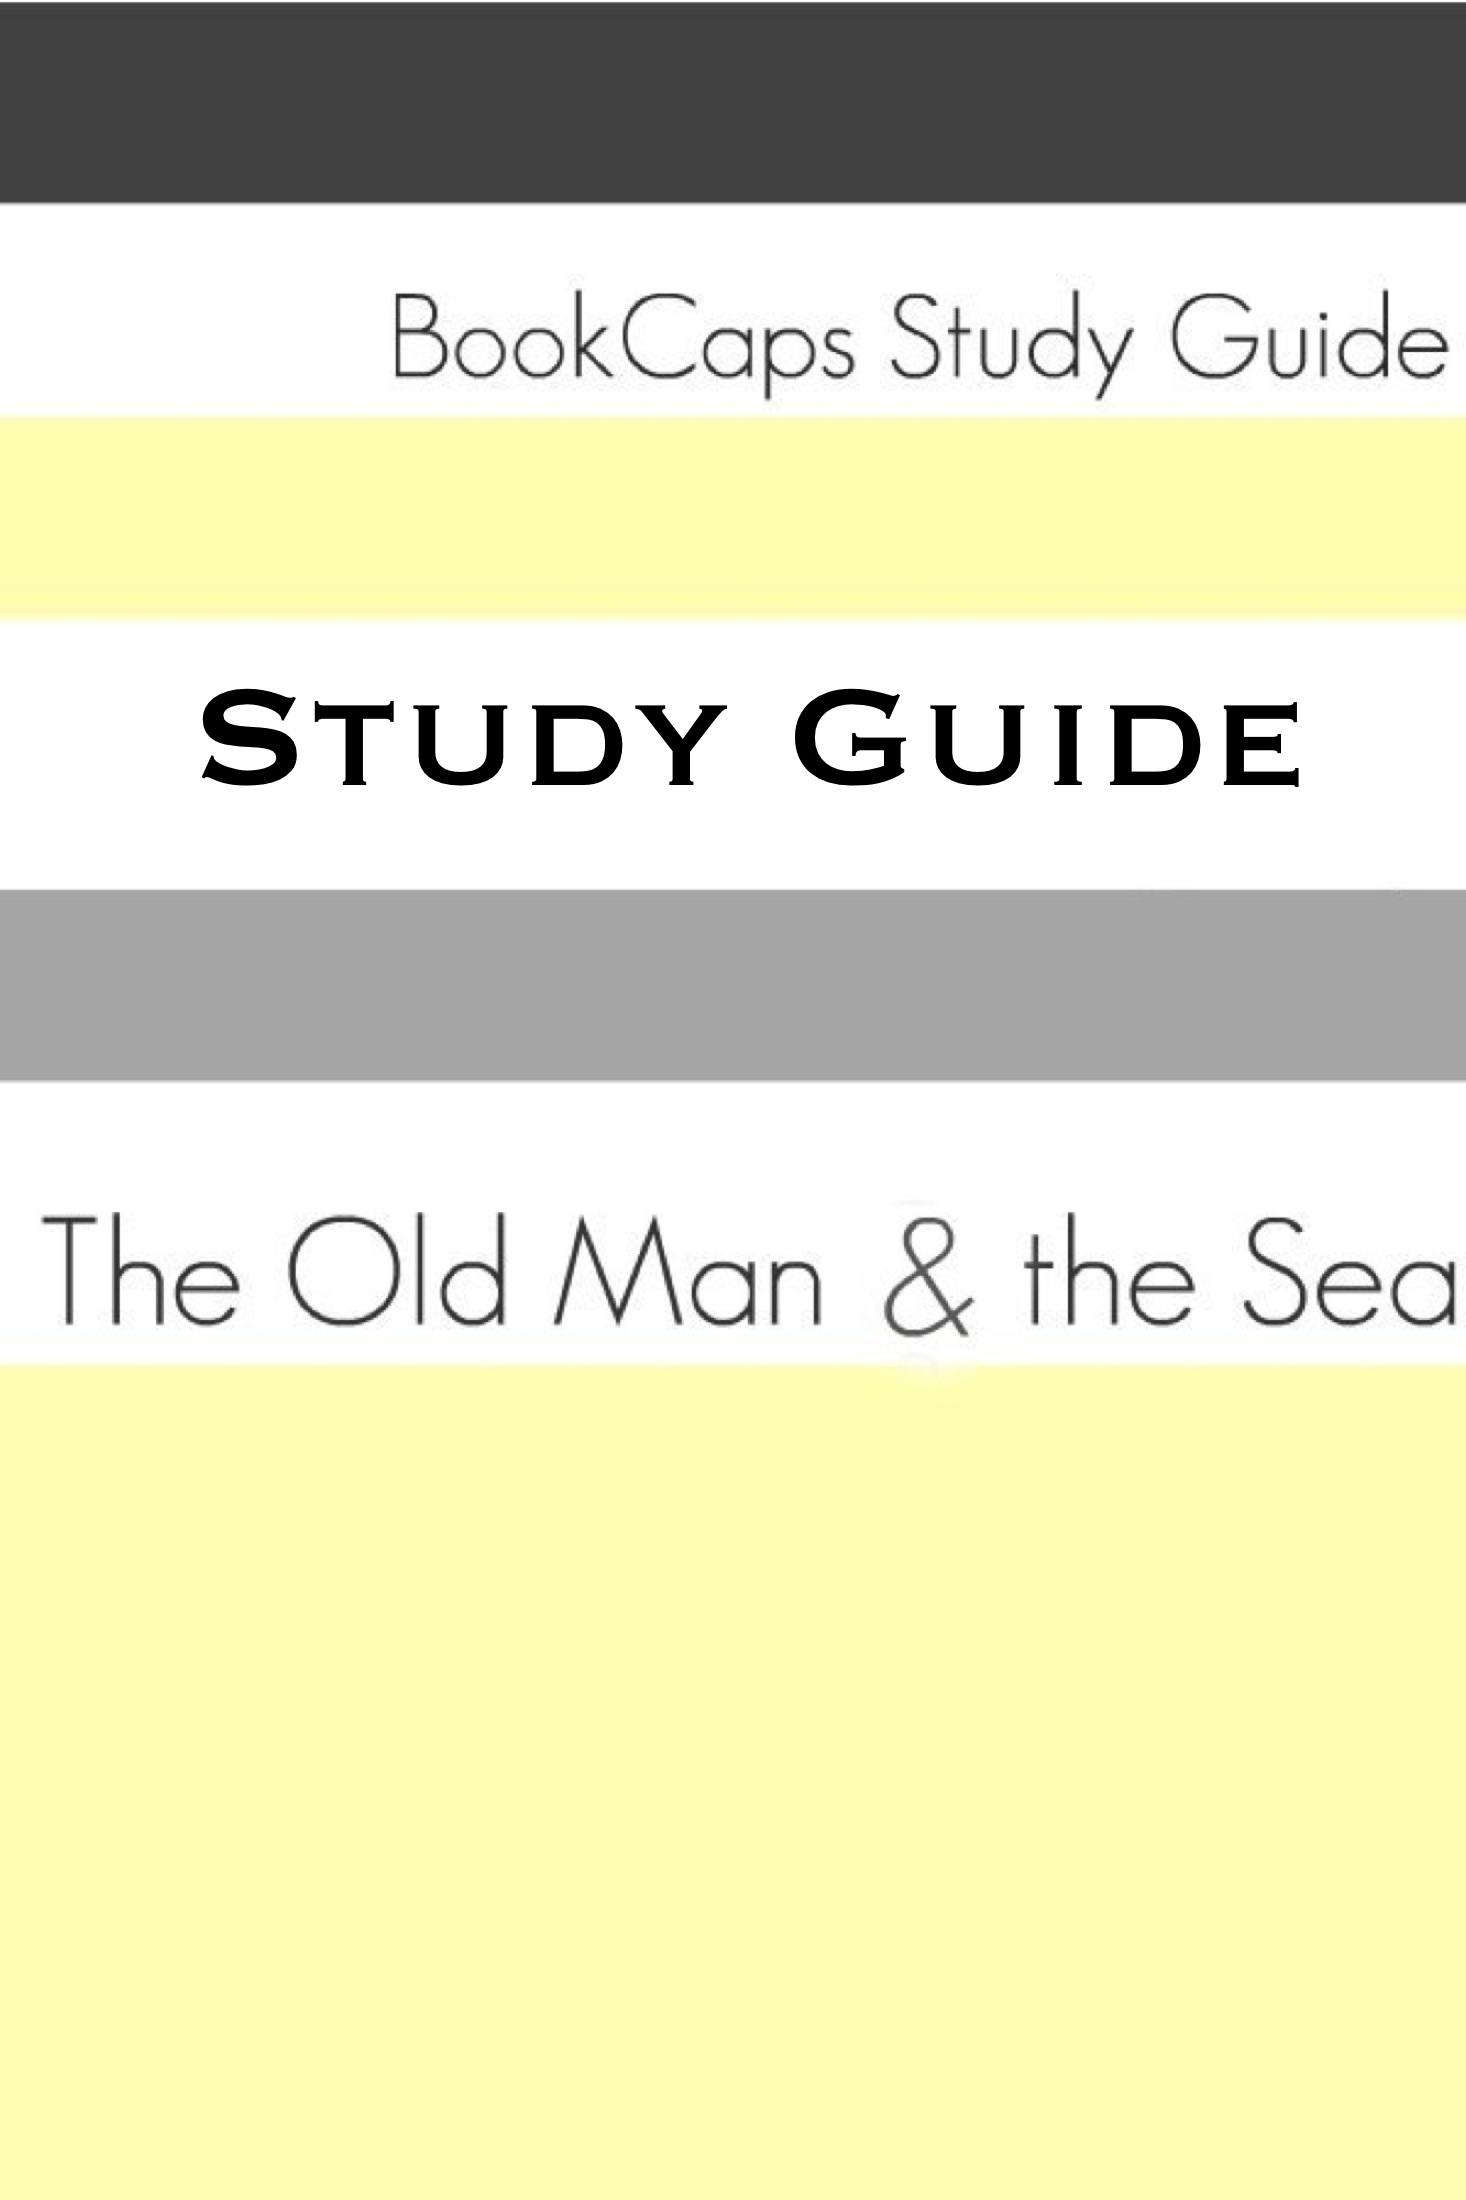 BookCaps - Study Guide: The Old Man and the Sea (A BookCaps Study Guide)